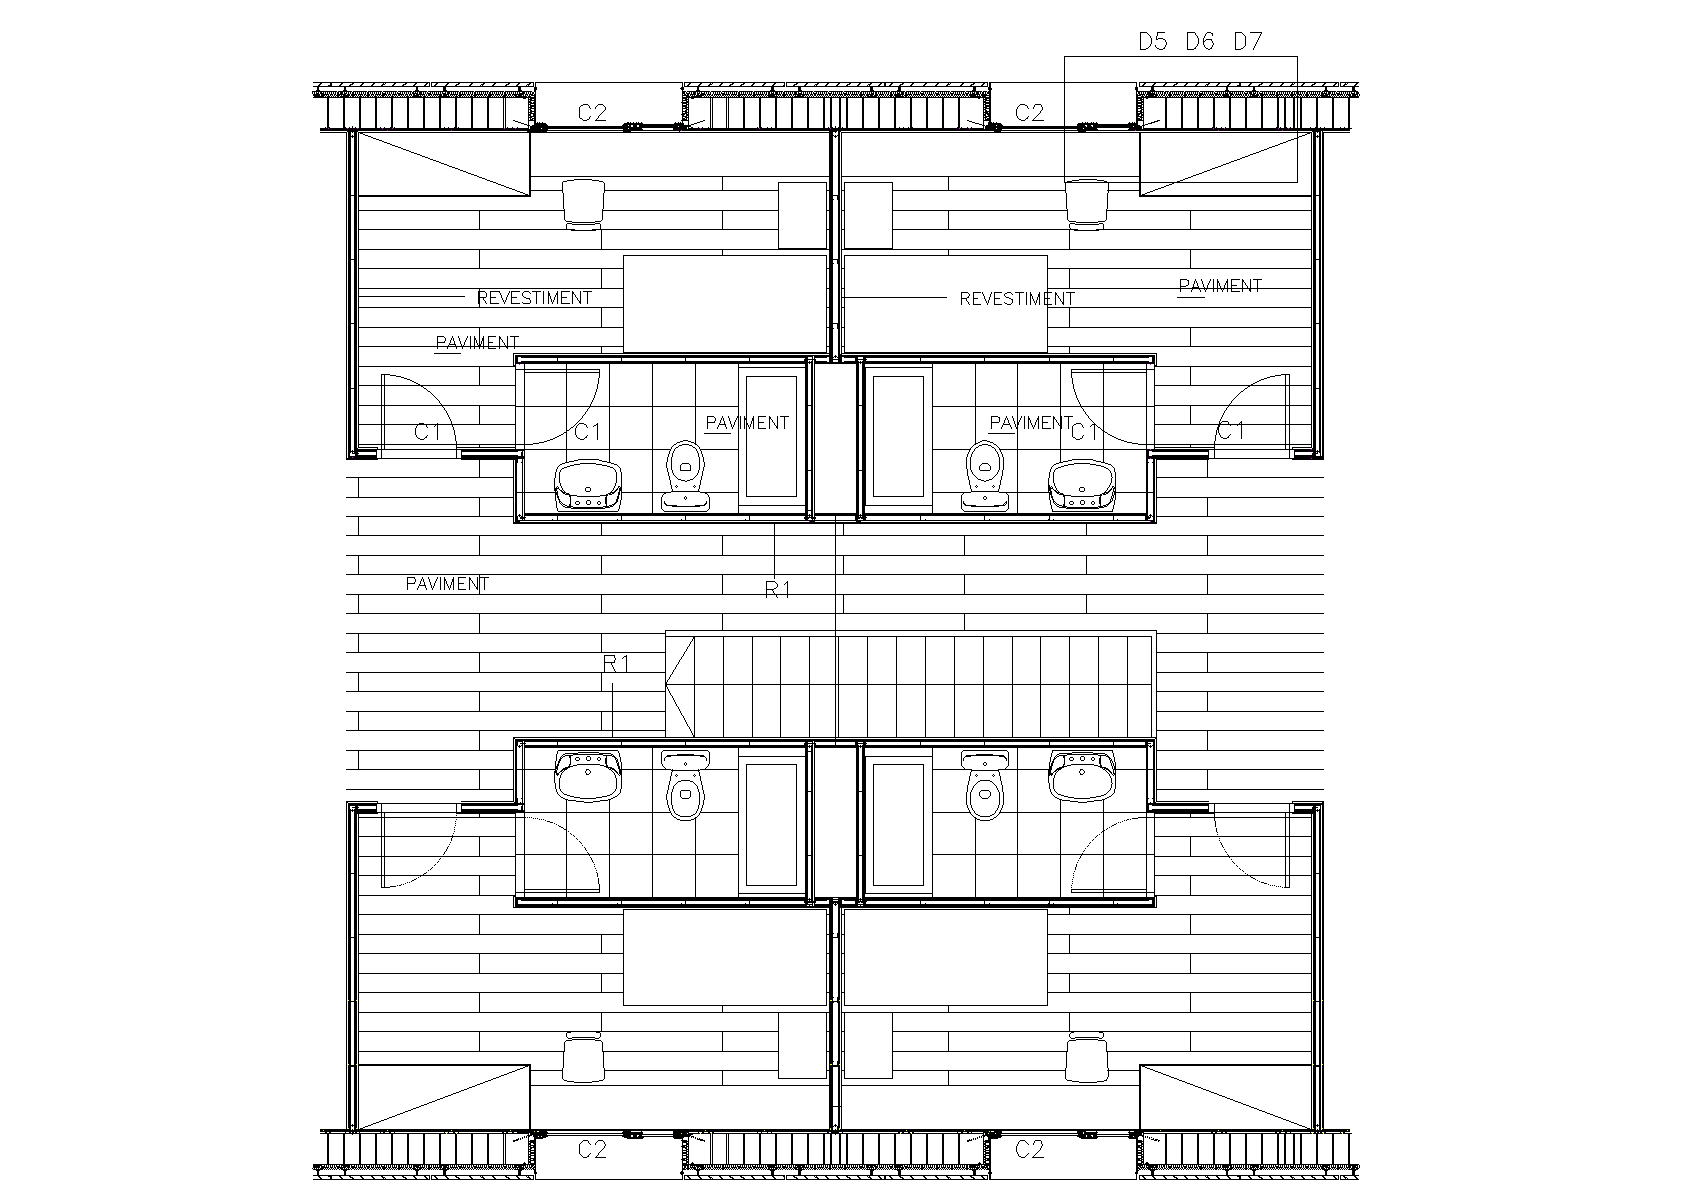 Constructive section plan detail dwg file.